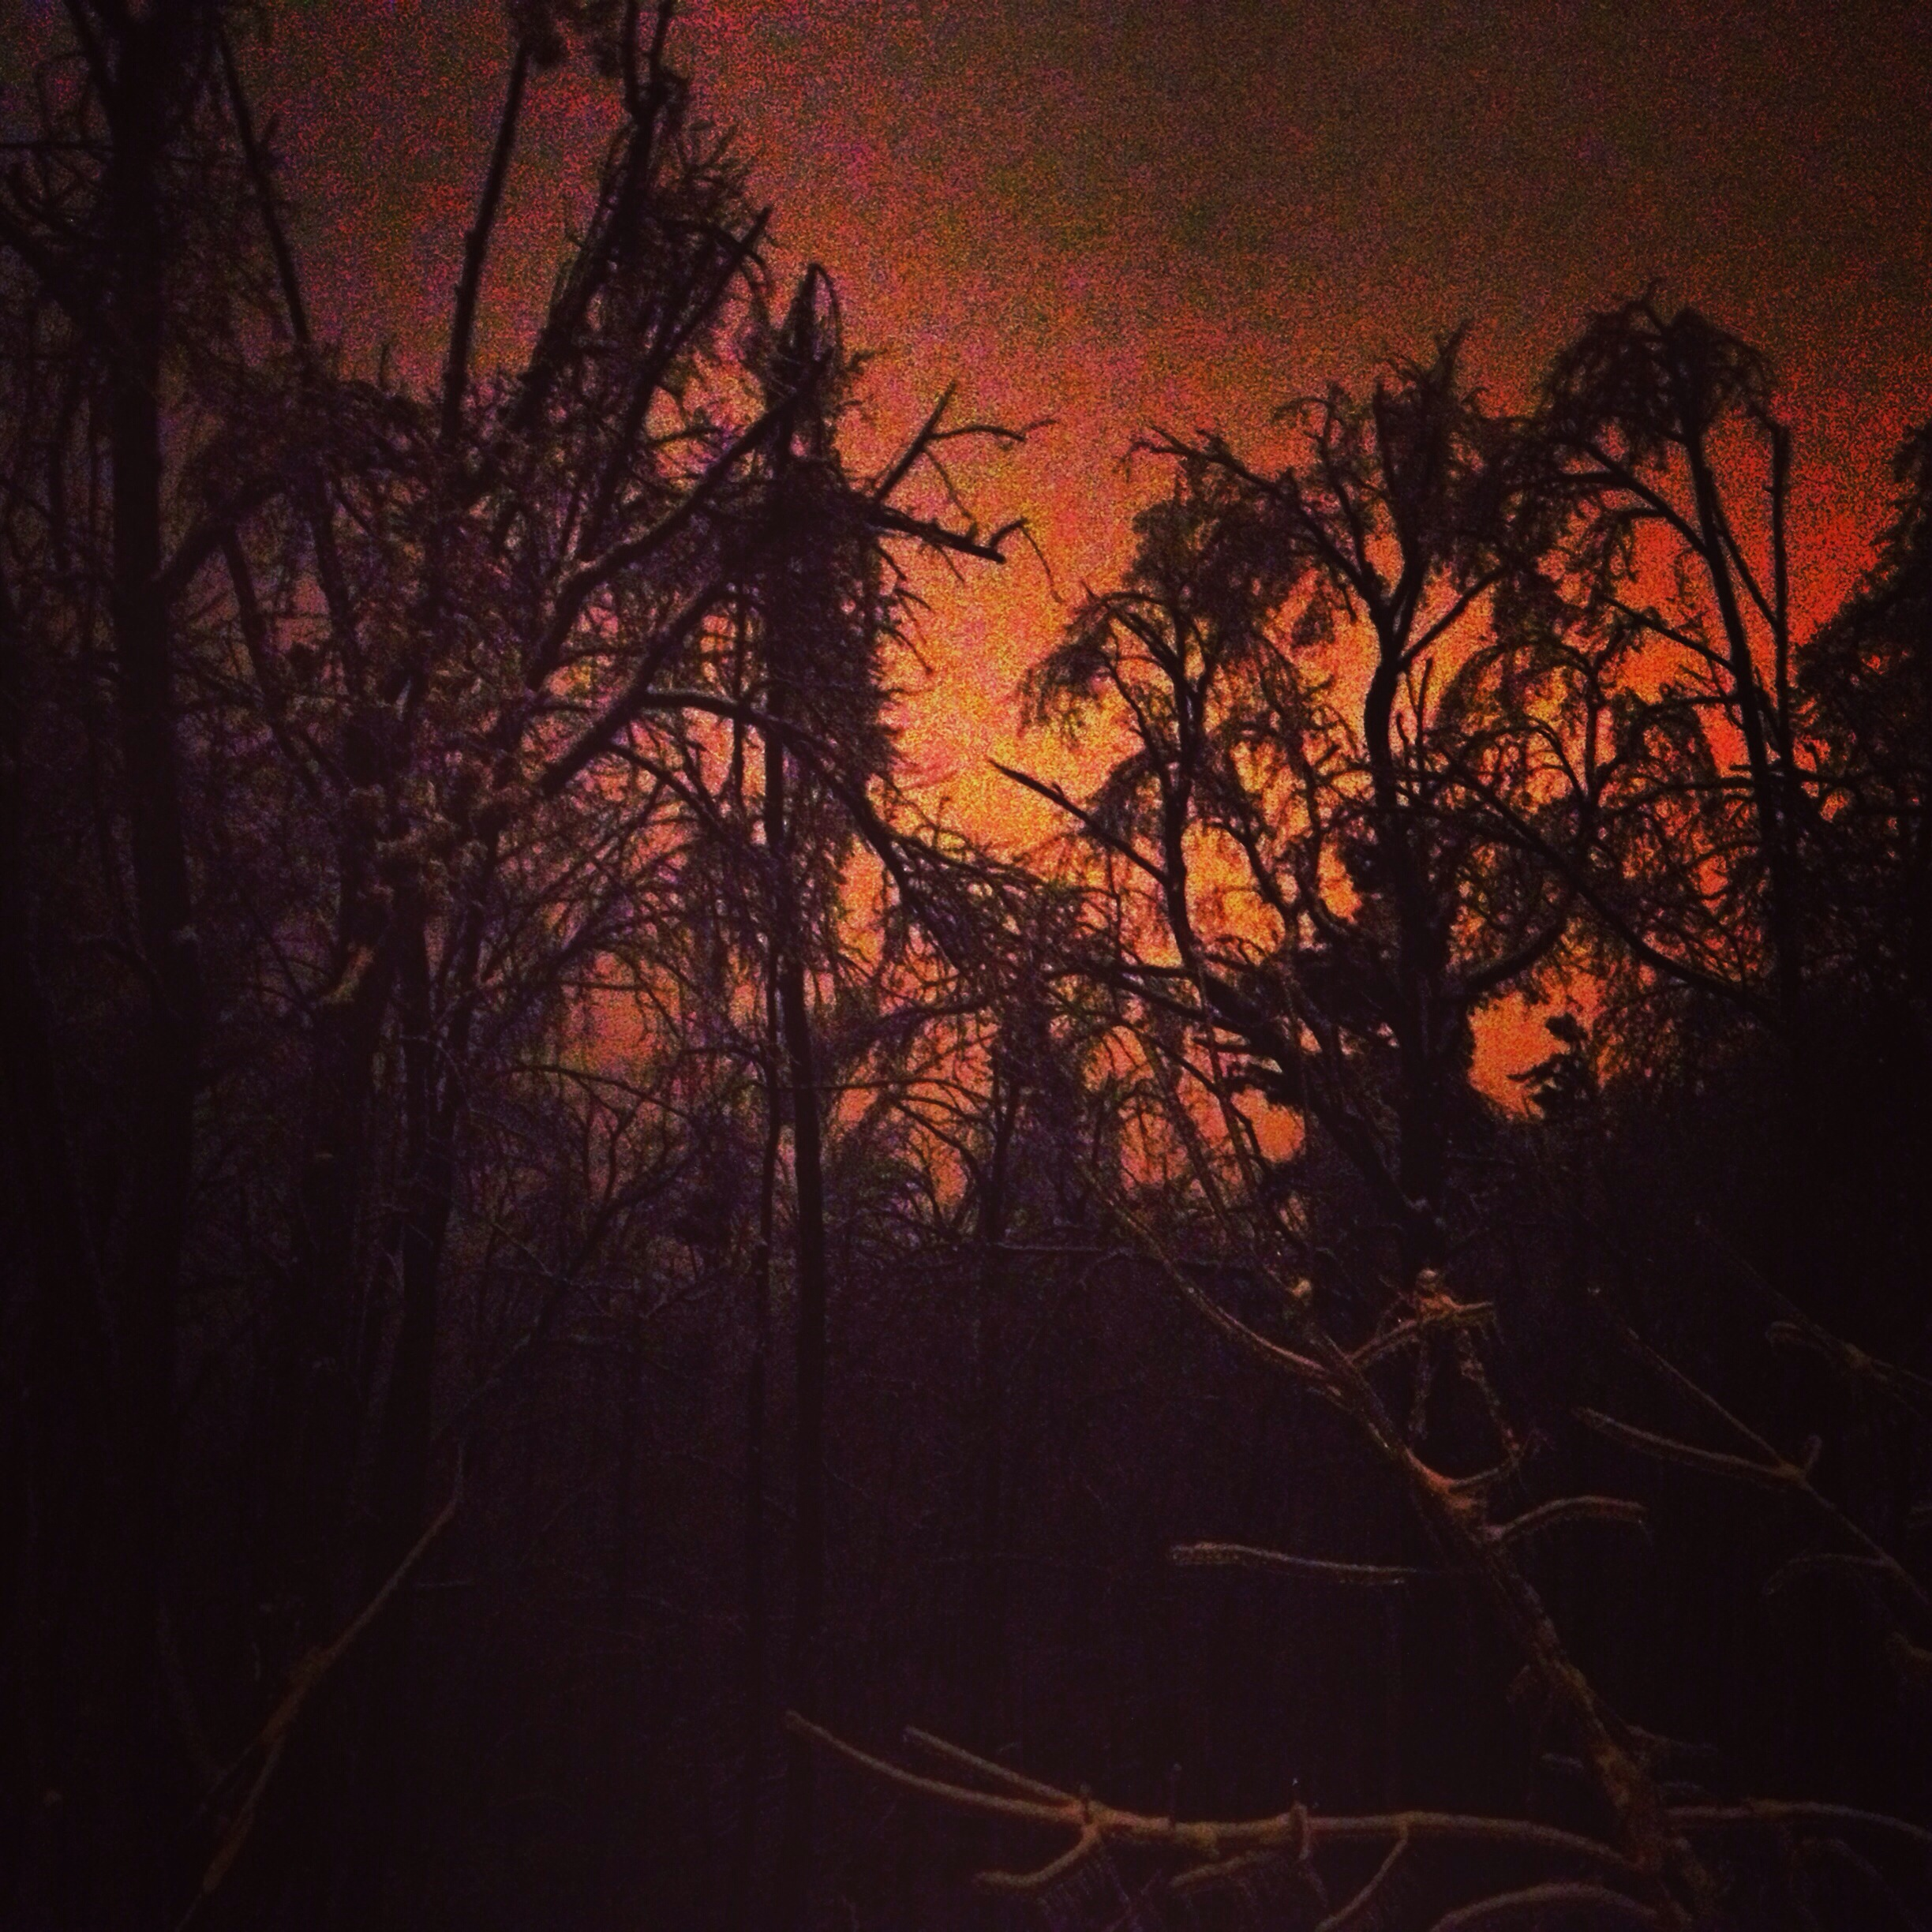 Ice-covered trees in dark orange glow